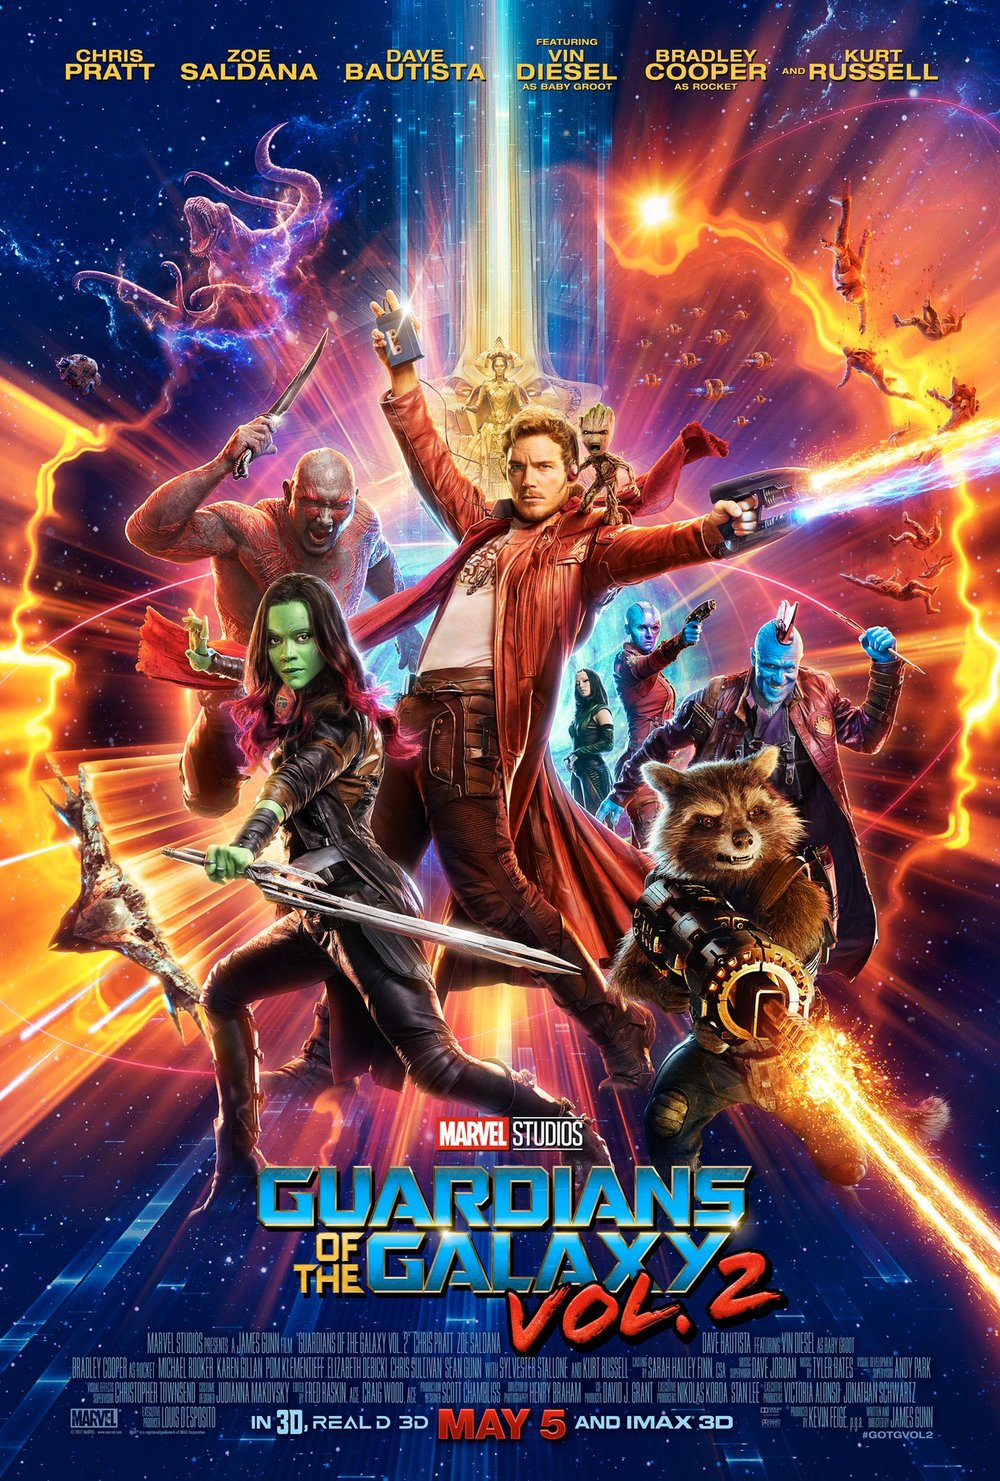 guardians-of-the-galaxy-2-movie-poster-marvel-cinematic-universe-1038911.jpeg